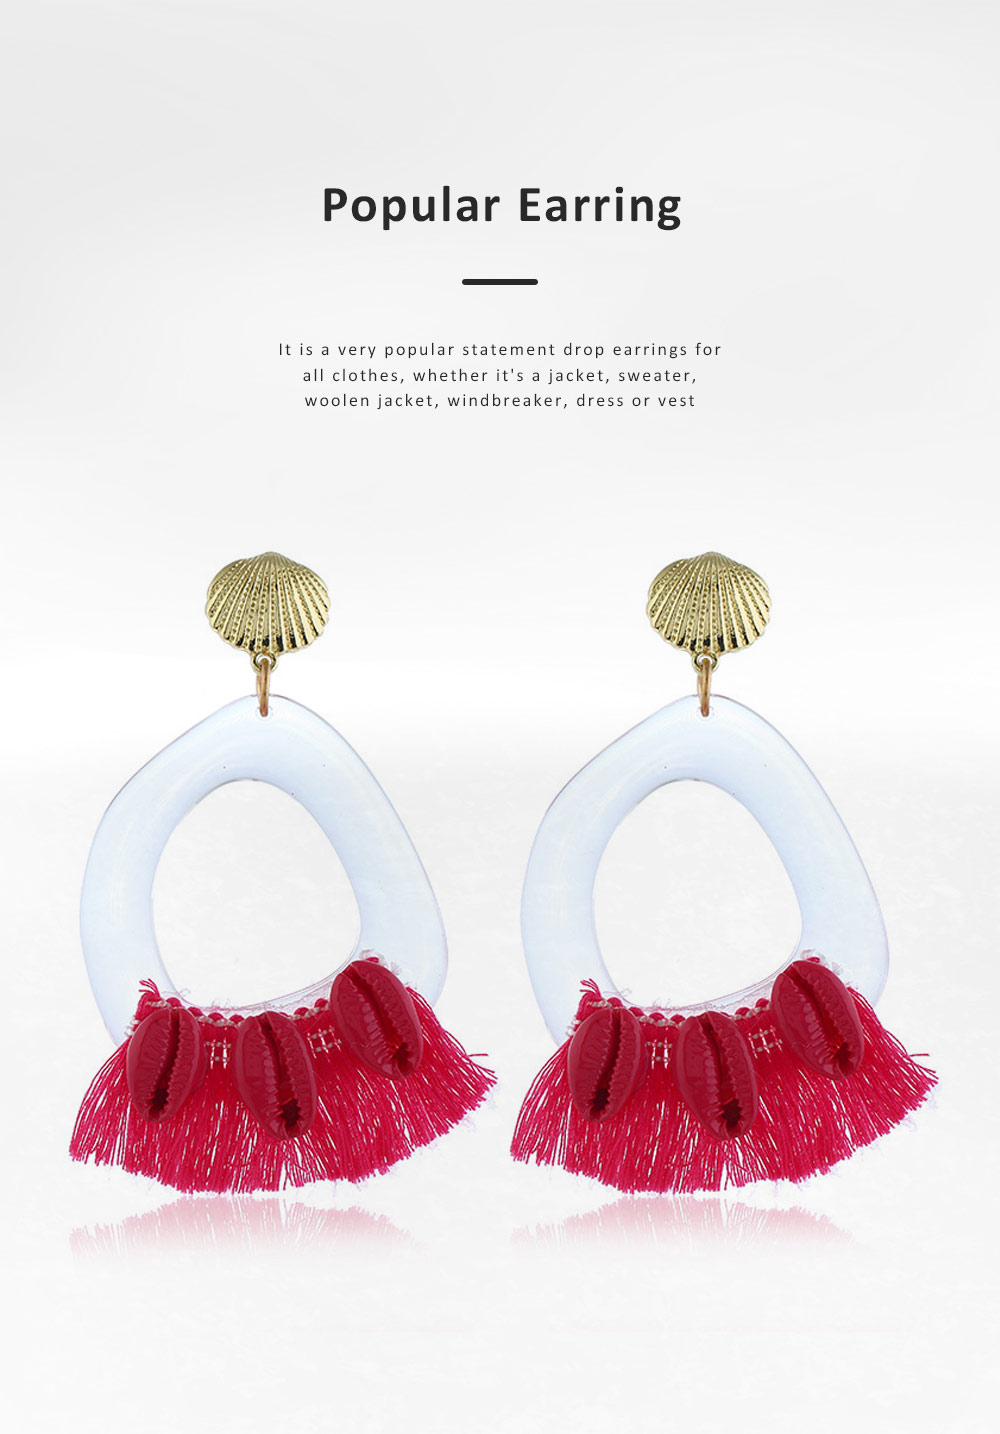 Stylish Boho Earring Natural Style Tassel Shell Accessory Attractive Dangle Earrings for Women Girls 5